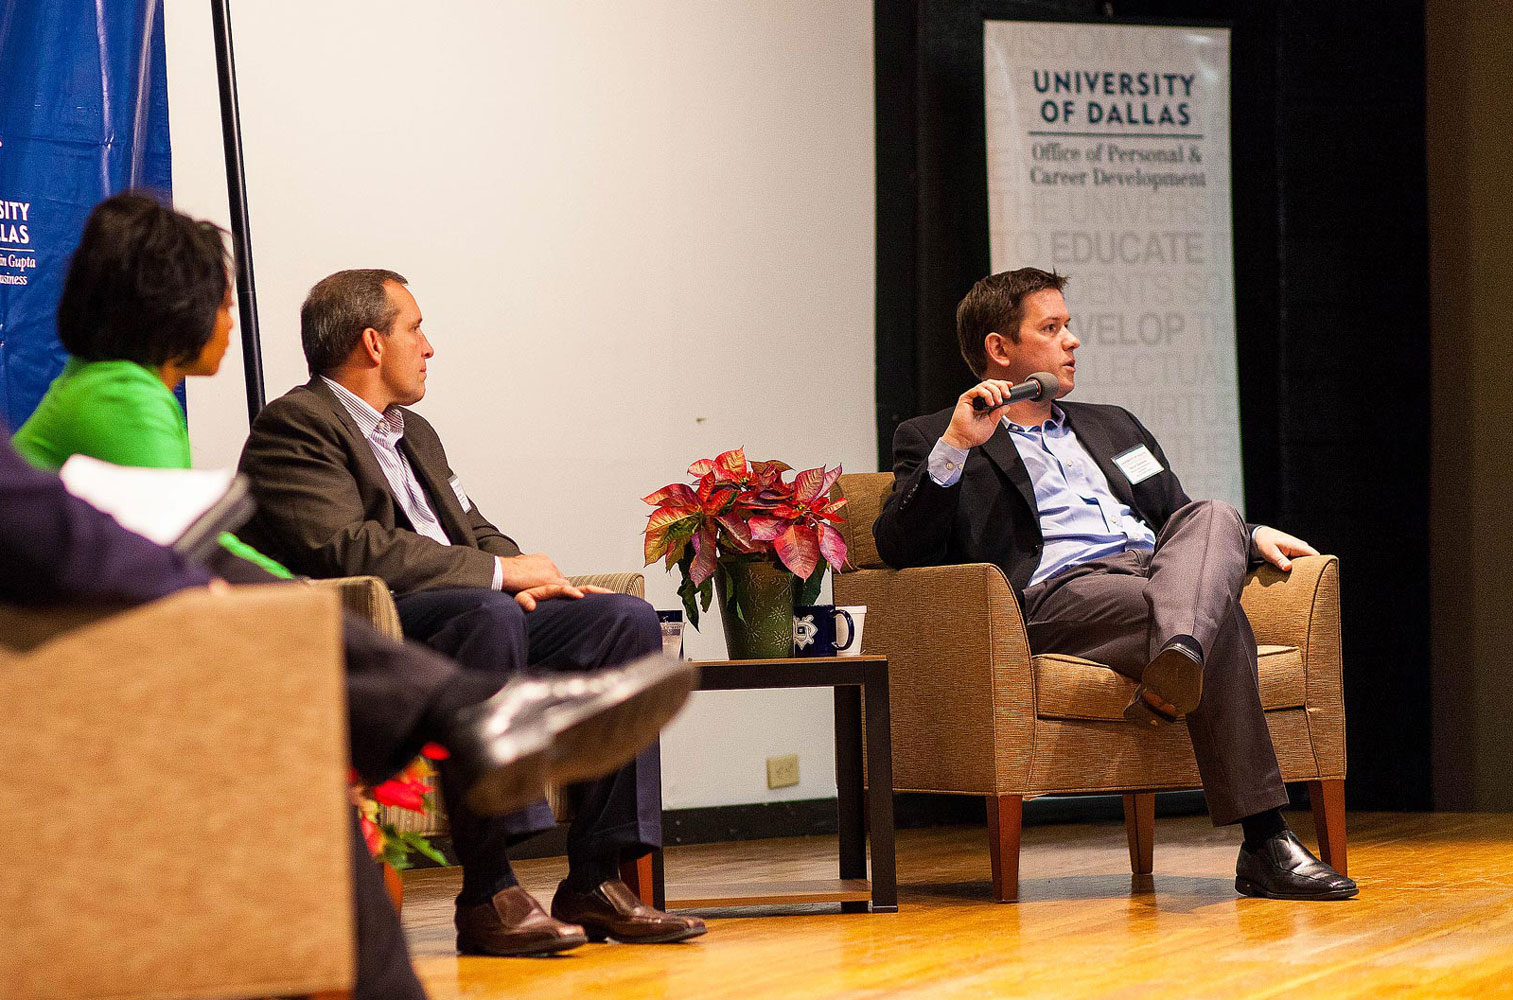 Panel Event at the University of Dallas